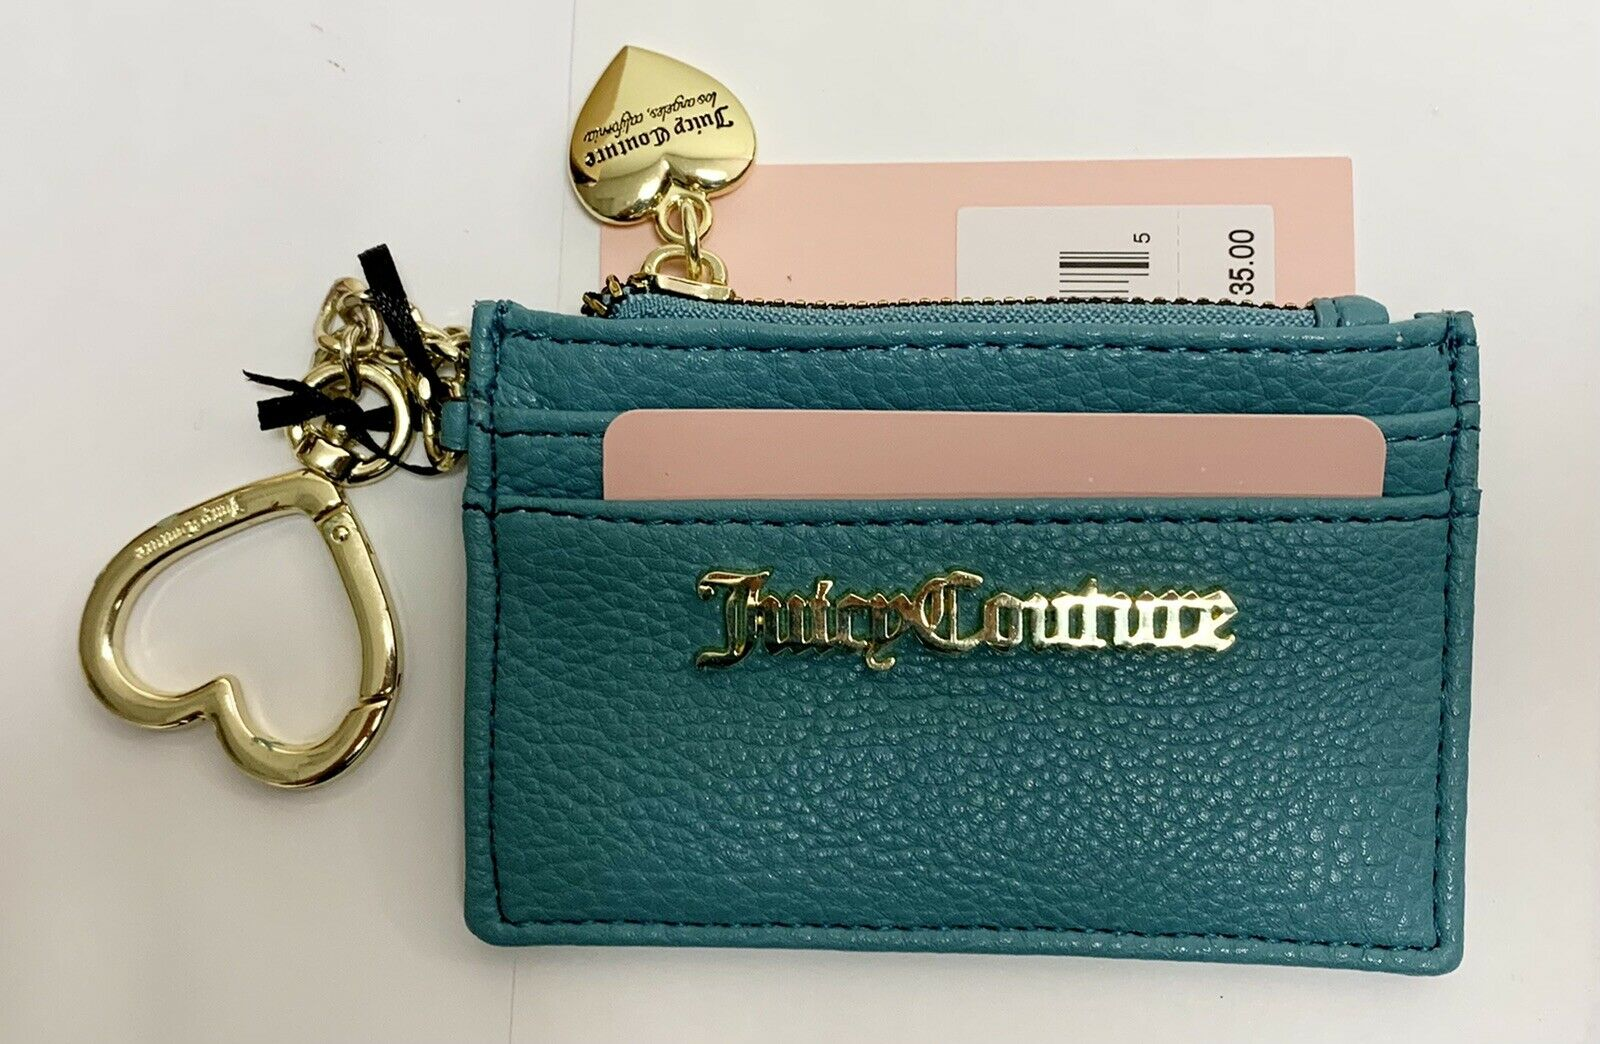 New w/ tags Juicy Couture Tonic Turquoise Charm City Card Case Key Chain Wallet